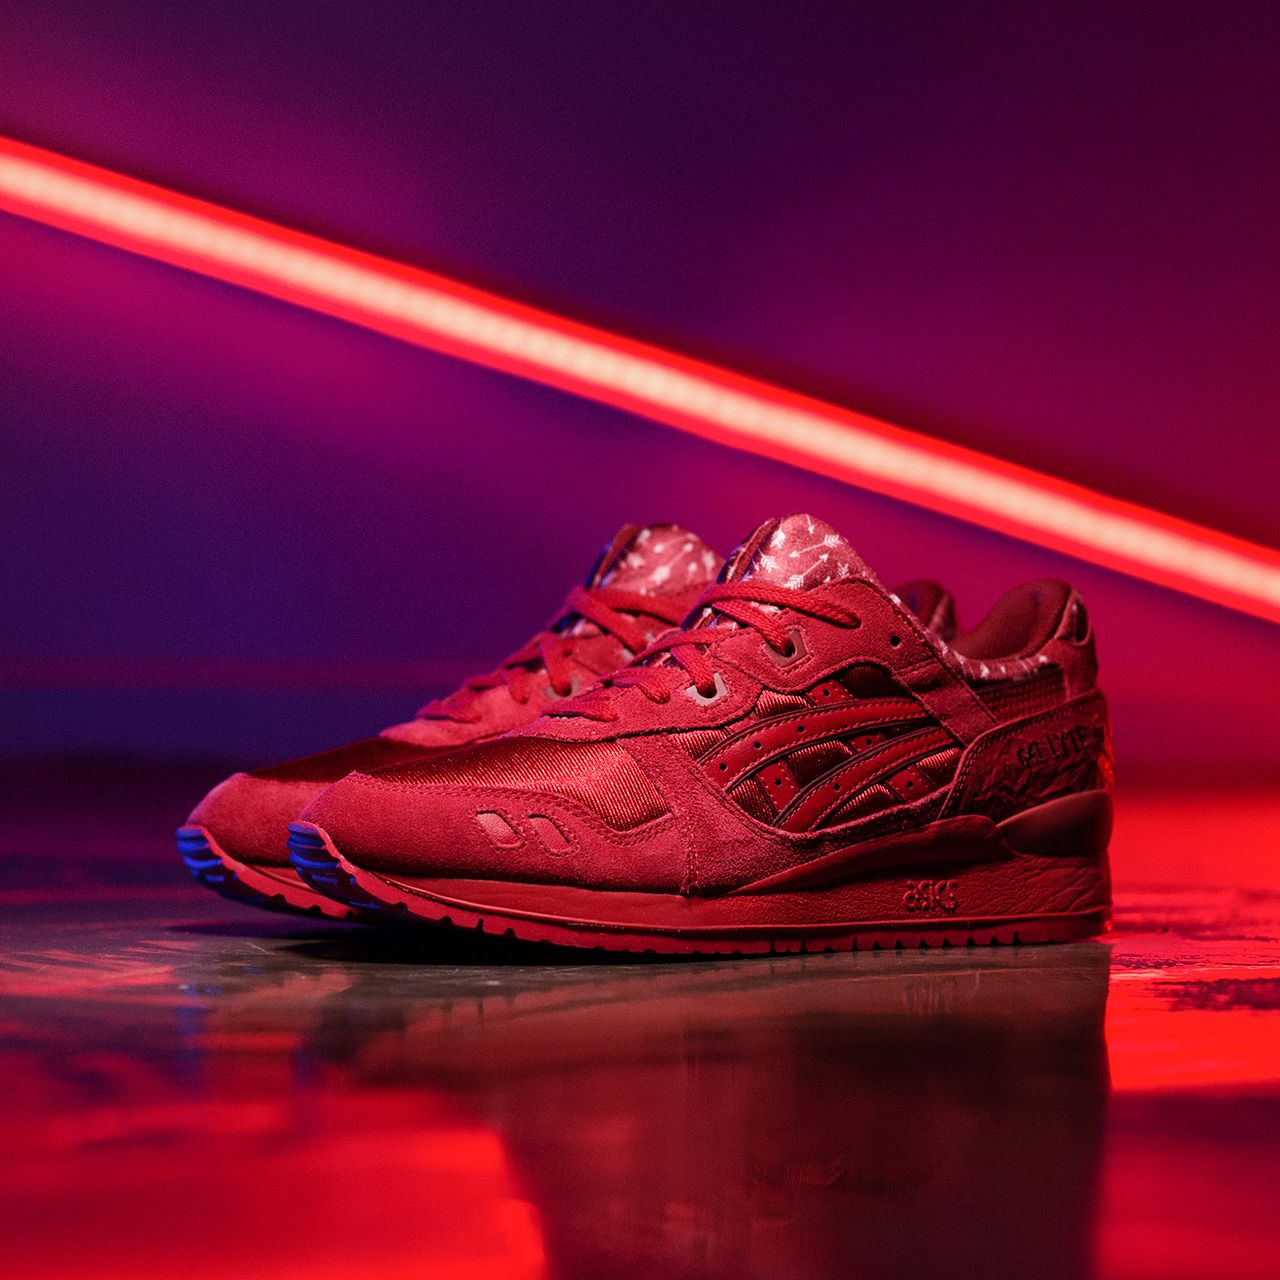 Asics Womens Gel-Lyte III 'Valentine's Day' Trainer is available now!